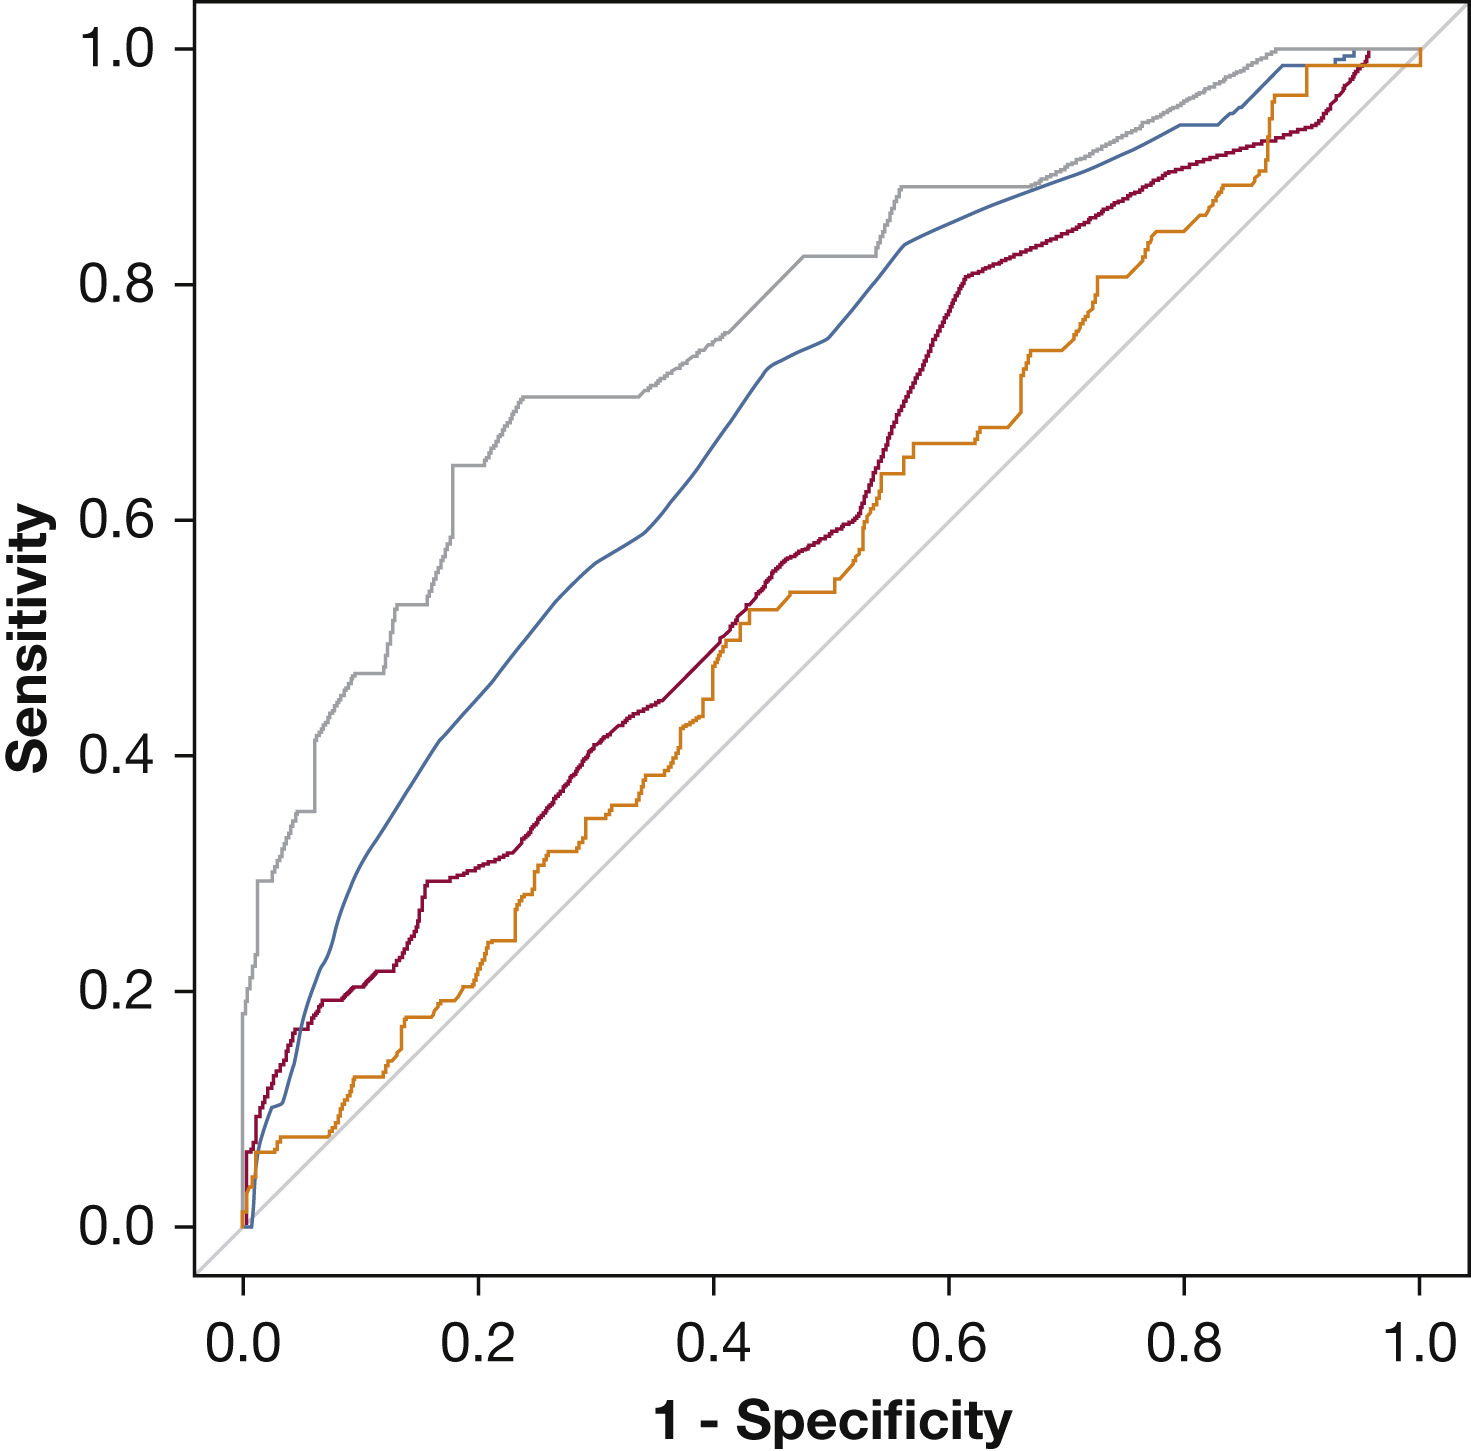 Oxygenation Saturation Index Predicts Clinical Outcomes In